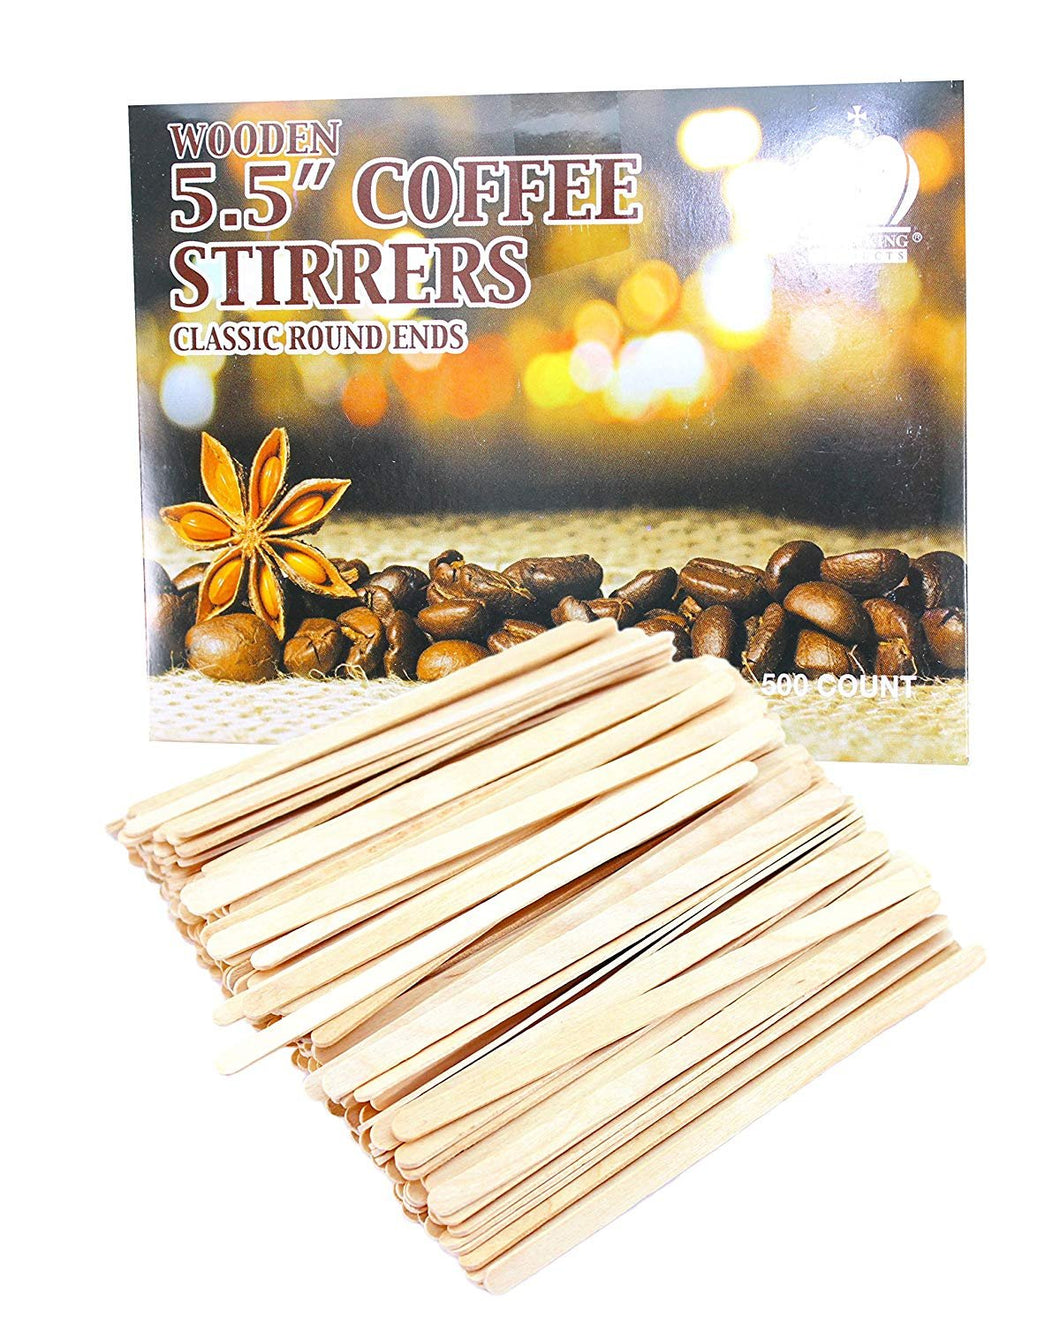 Pack of 500 Wooden Round End Coffee Stirrers, 5.5